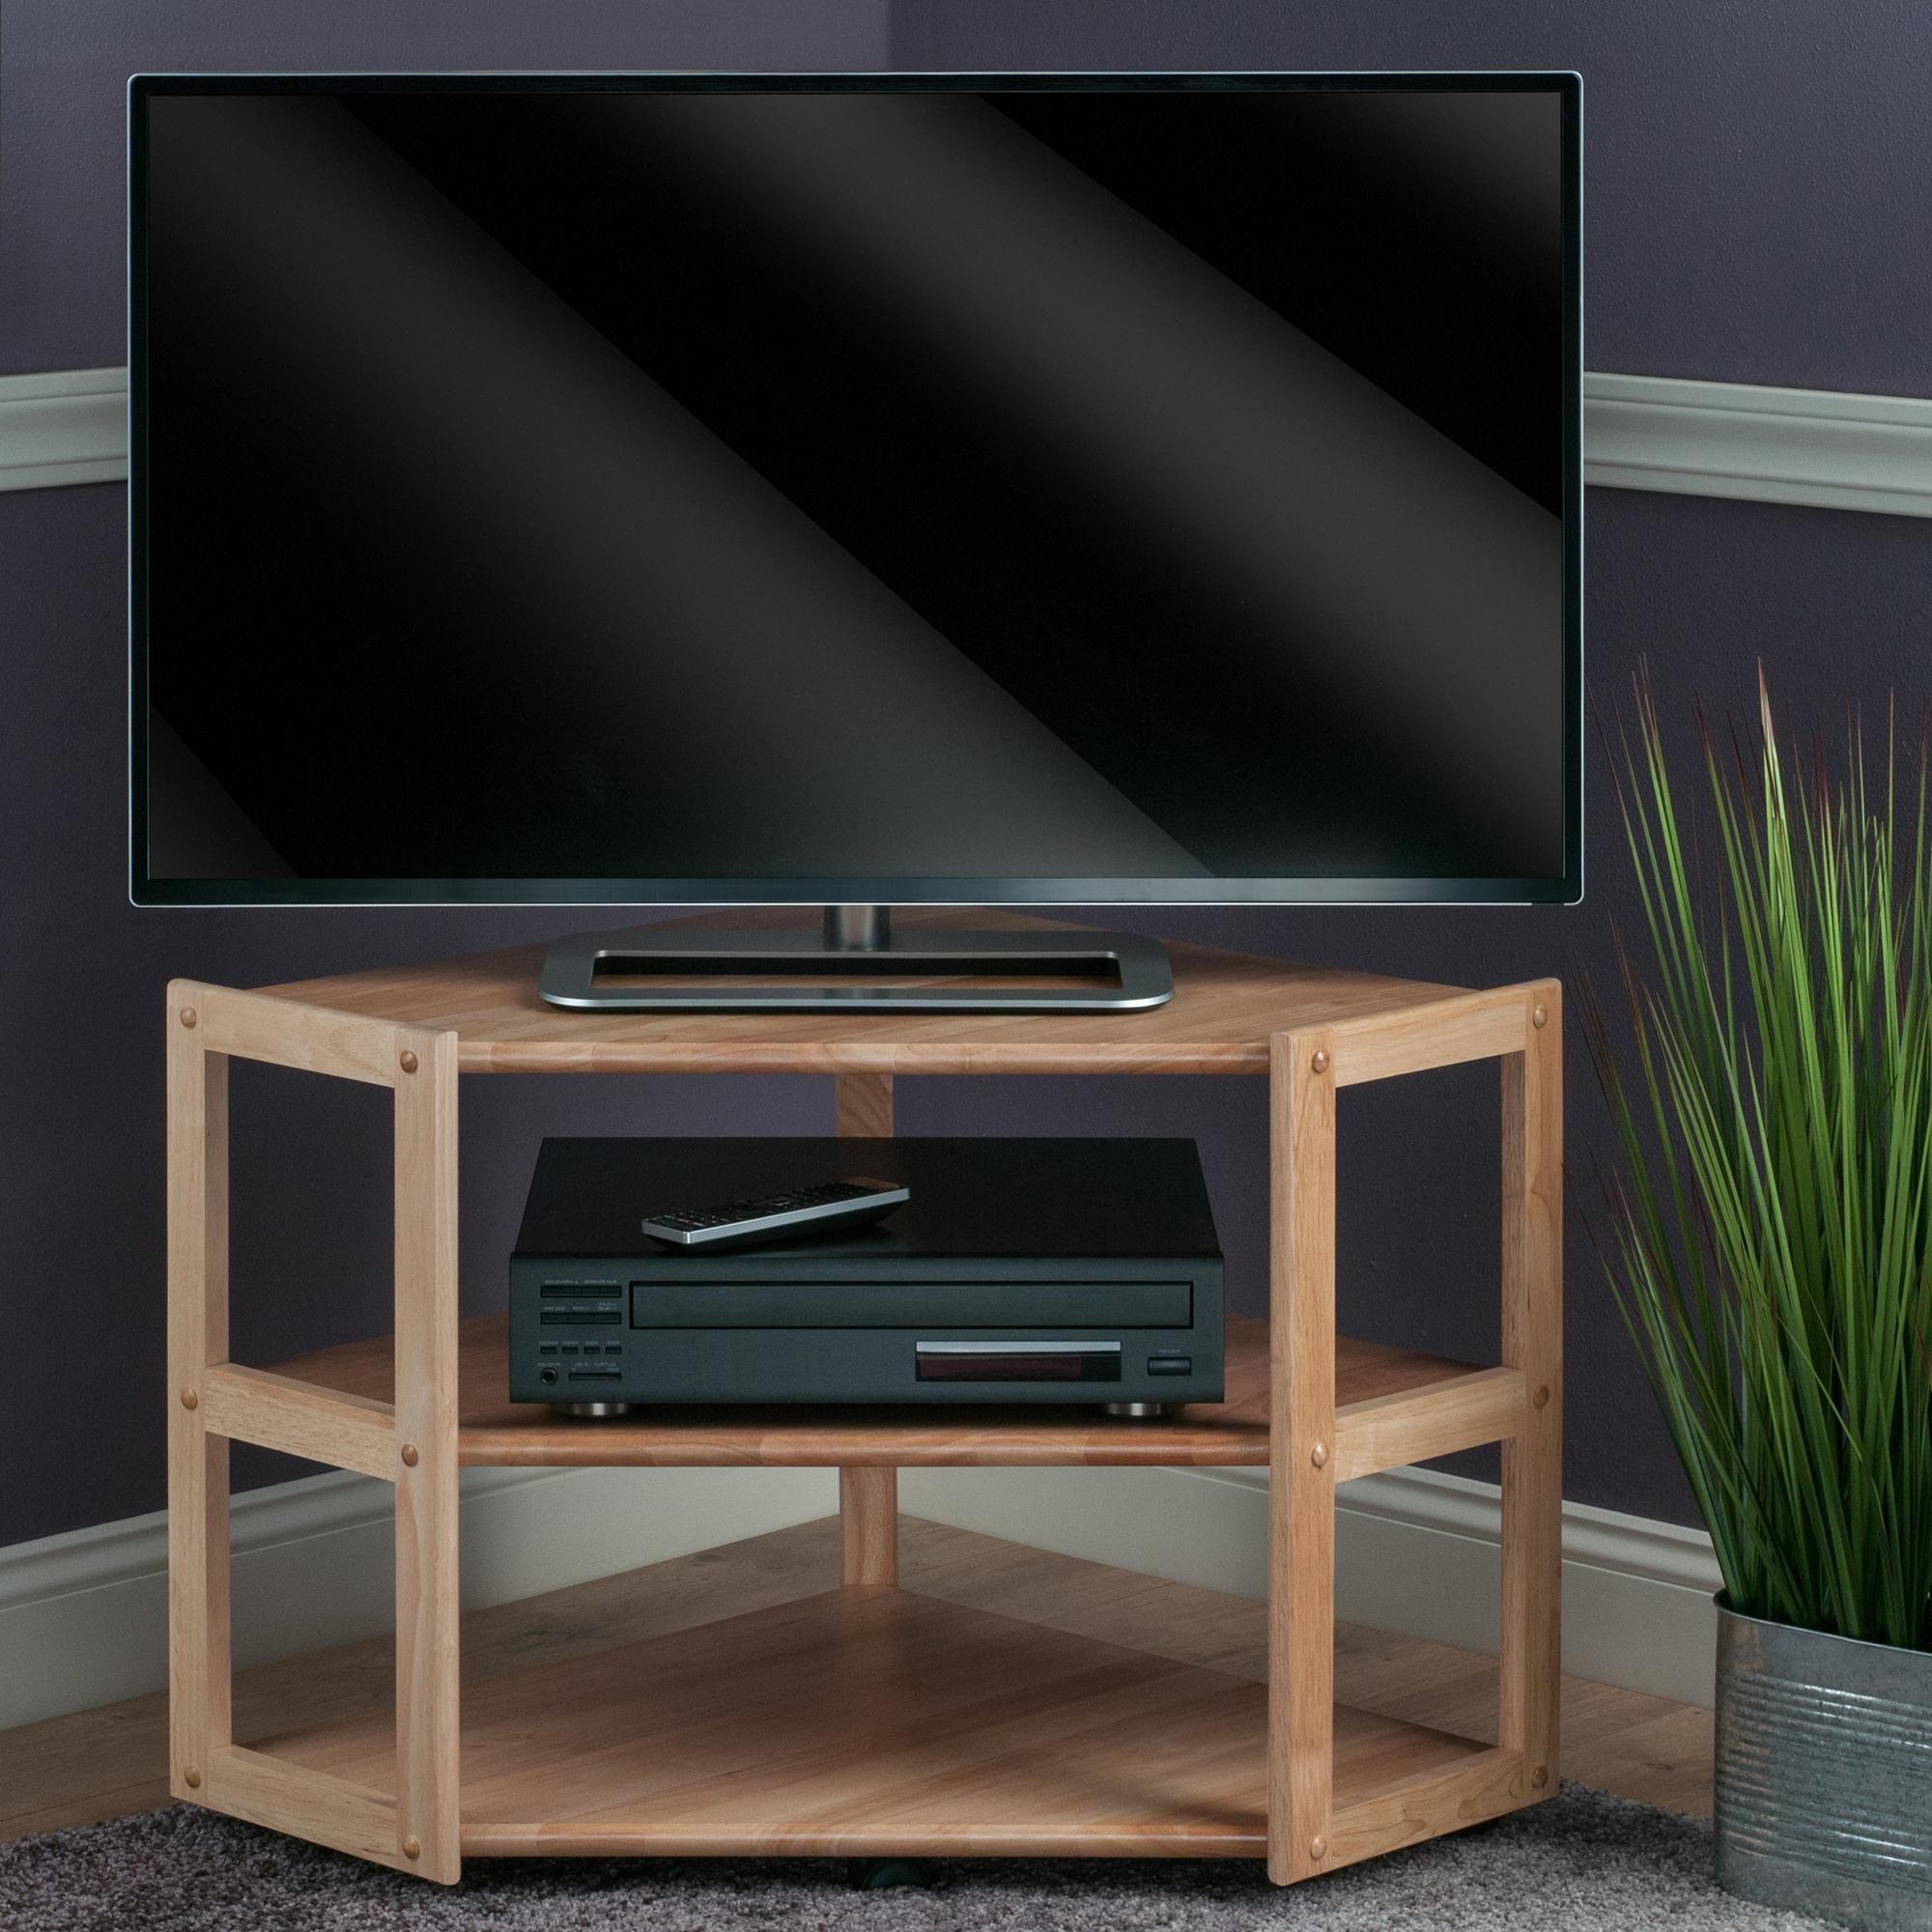 Amazon: Winsome Wood Corner Tv Stand, Natural: Kitchen & Dining In Most Up To Date Triangular Tv Stands (View 4 of 20)